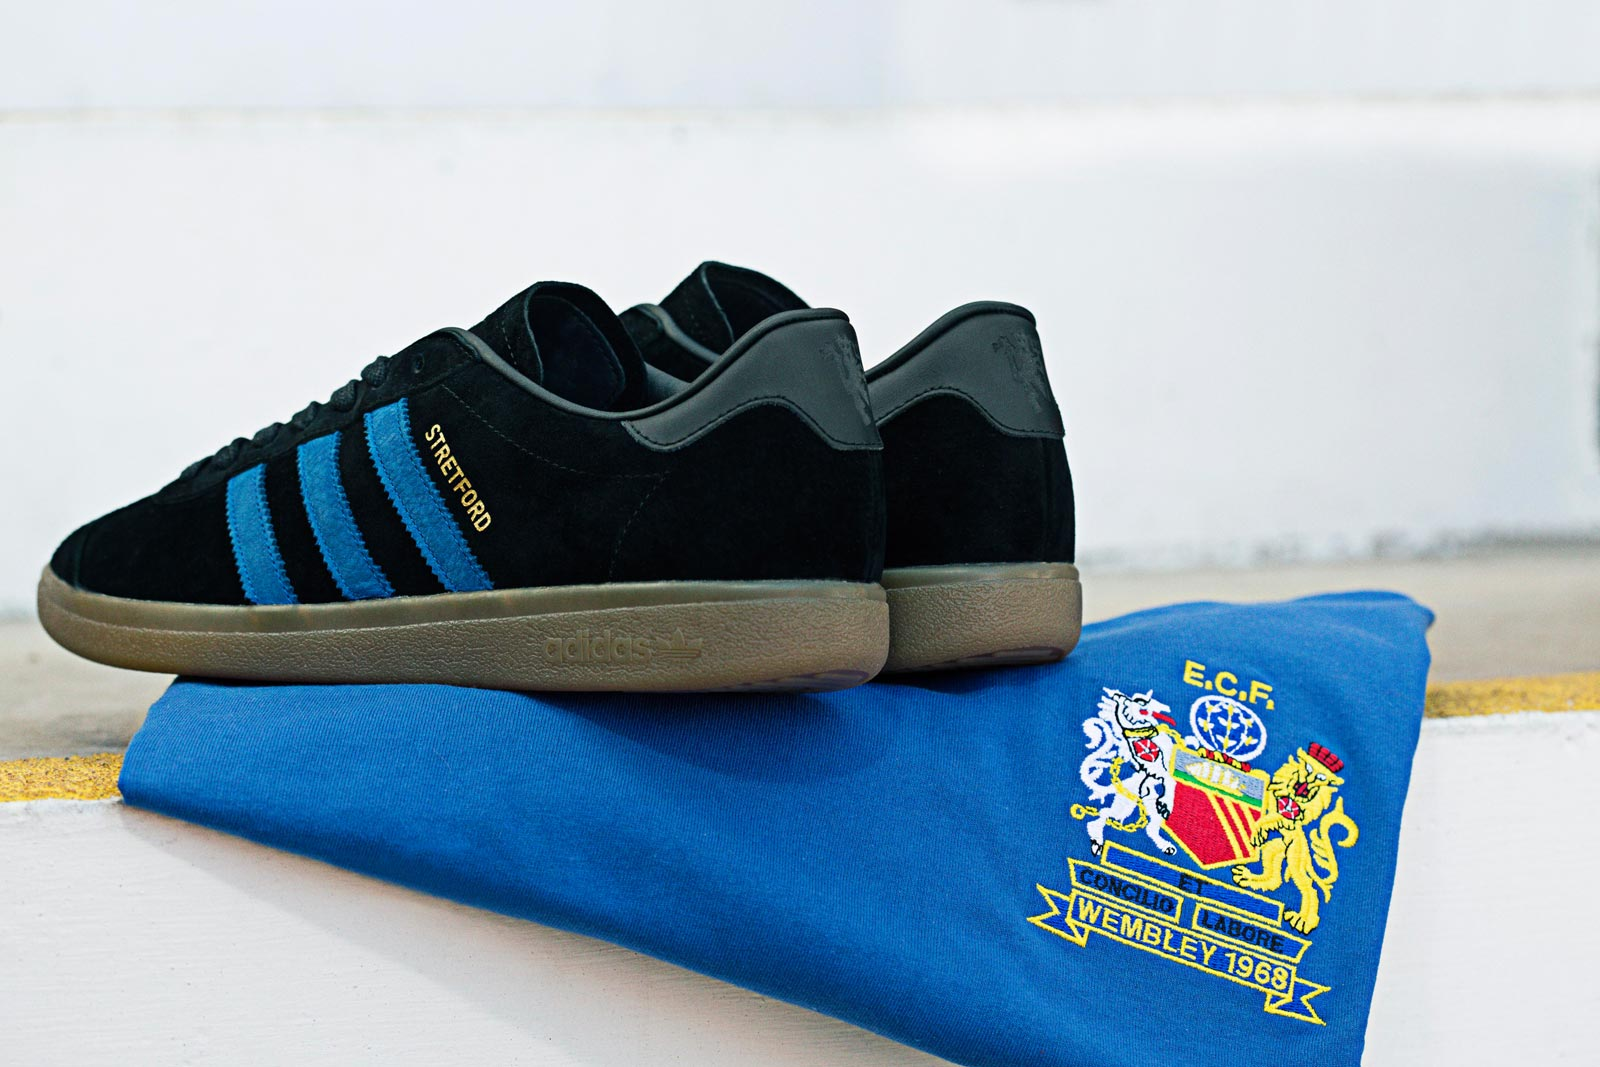 Adidas Sneakers Limited Edition